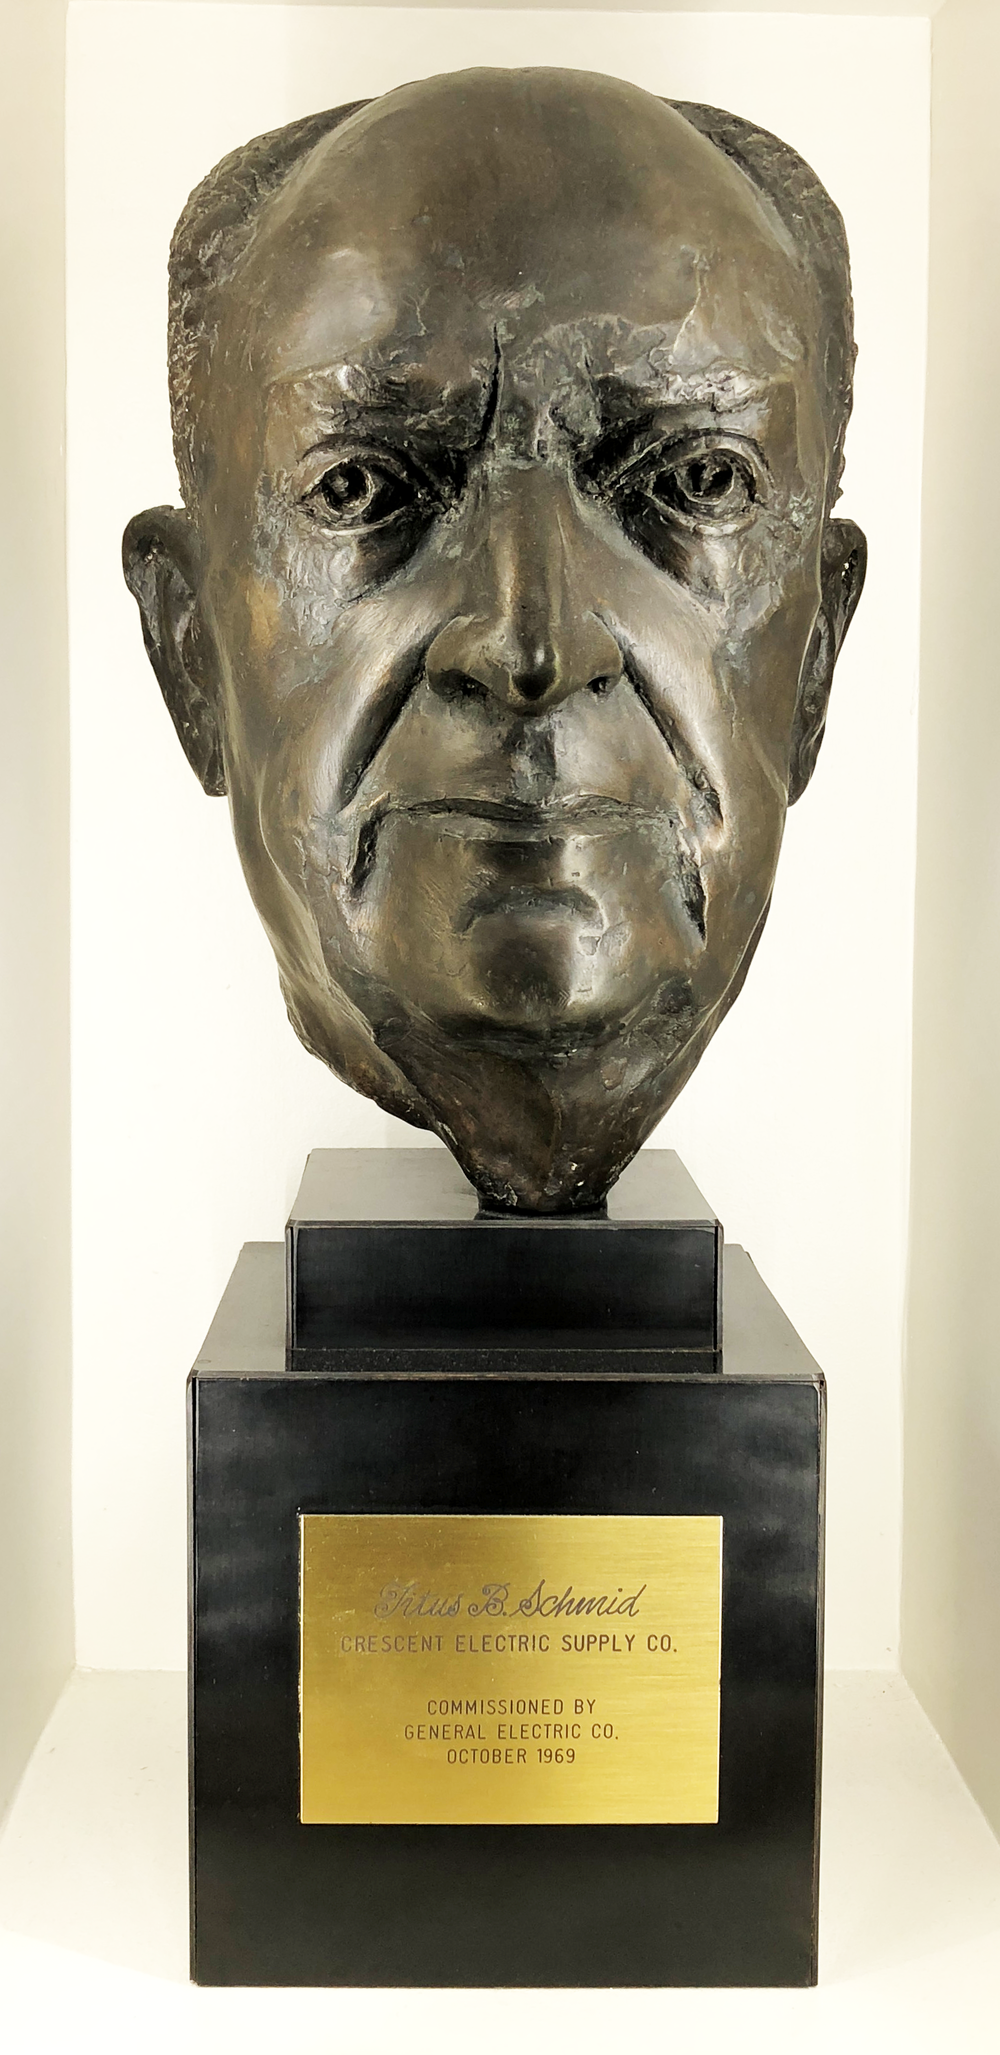 The original bust from 1969 is on display today at the Crescent Electric corporate office in East Dubuque, Illinois.